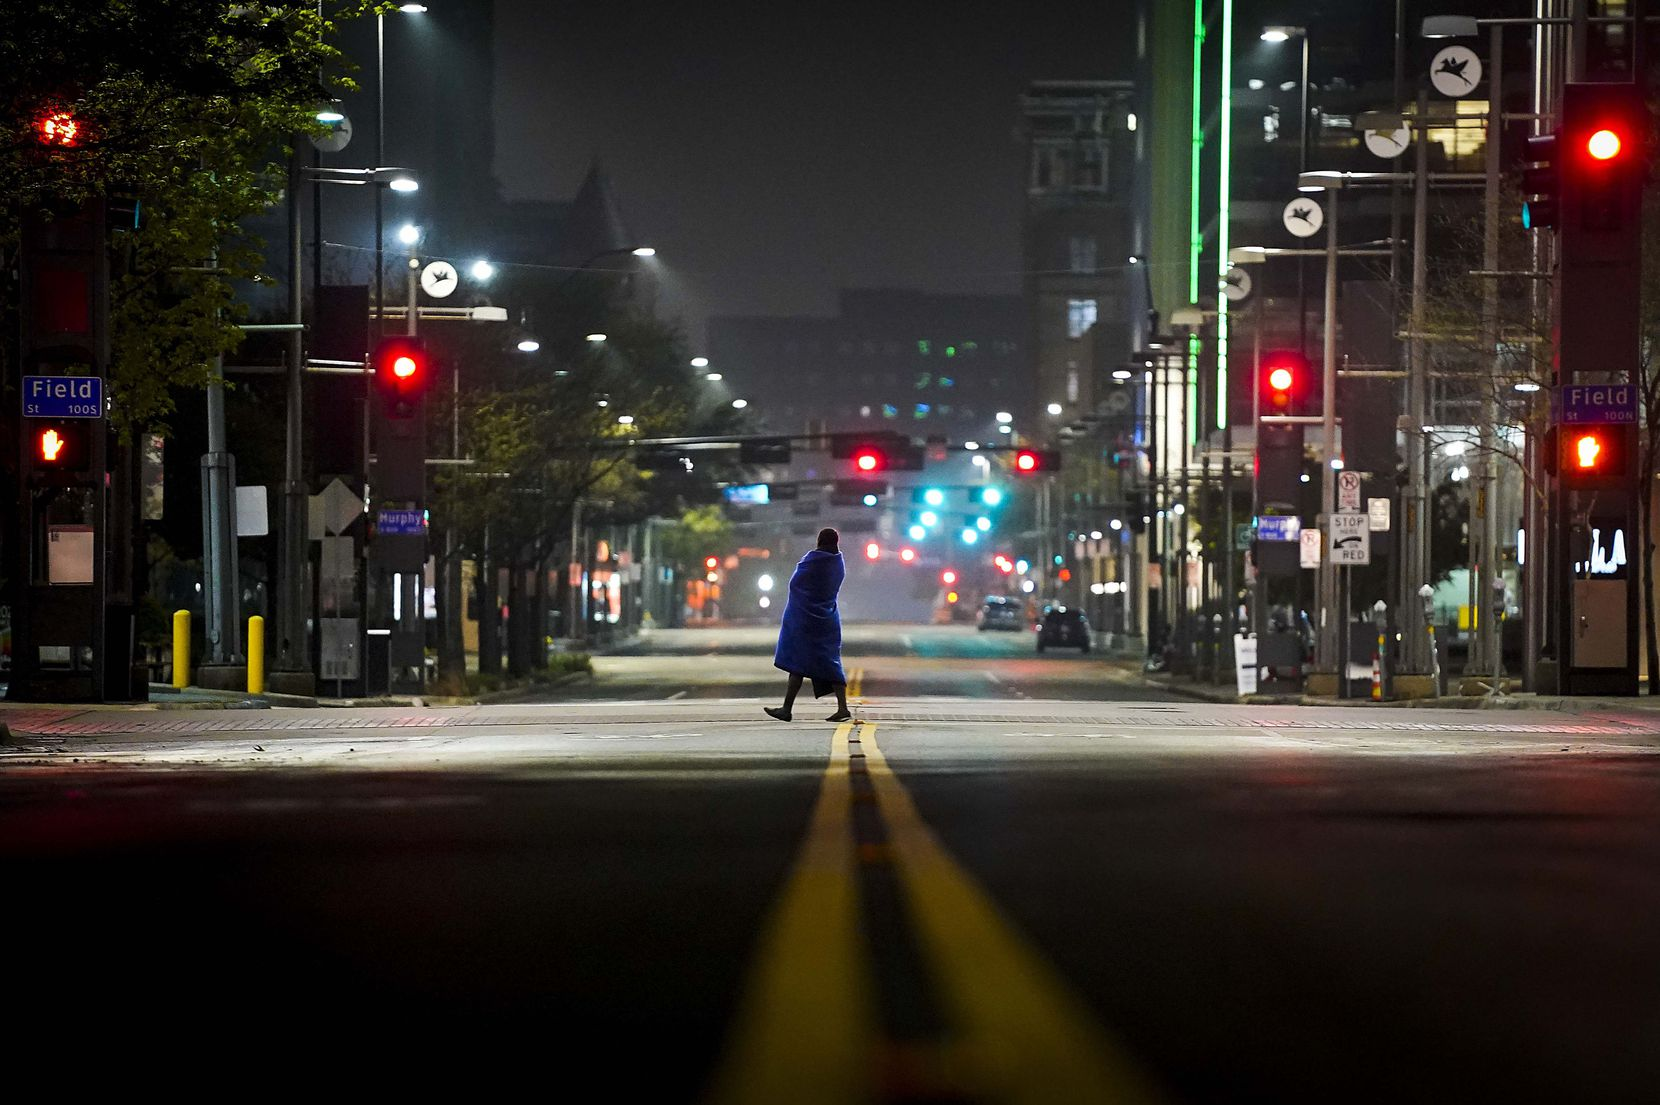 A solitary figure crosses the empty intersection of Main and Field streets in downtown Dallas at around 12:30 a.m. on Tuesday, March 24, 2020. Dallas County's shelter-in-place order went into effect at 11:59 p.m. on Monday, requiring all people living in Dallas County to stay home — except for essential activities and jobs.